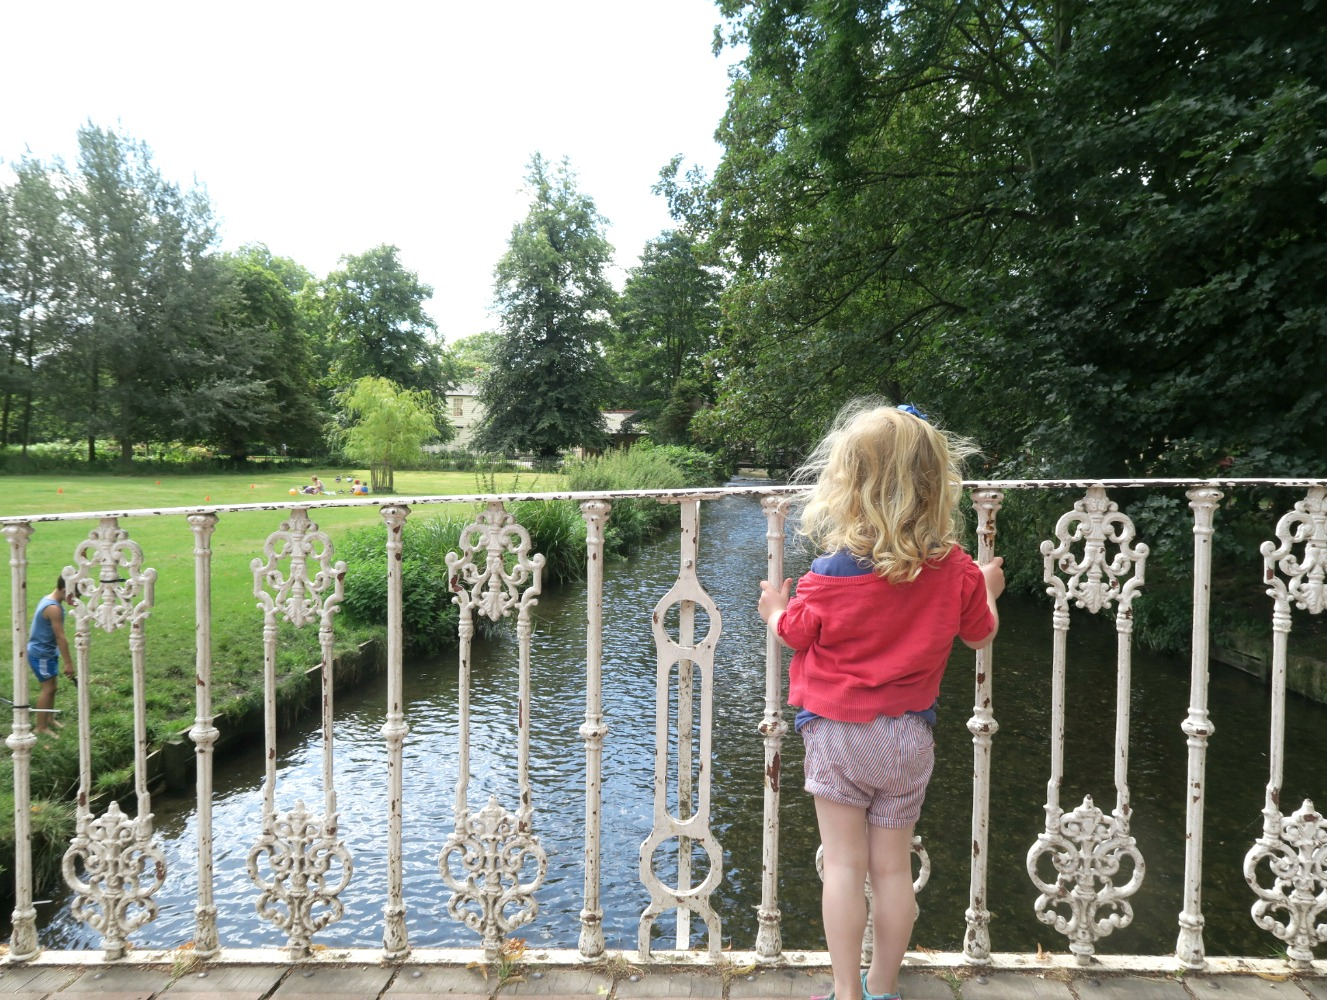 My daughter on the bridge at Morden Hall park, where she saw her first theatre performance at an open air production in the National Trust property rose garden